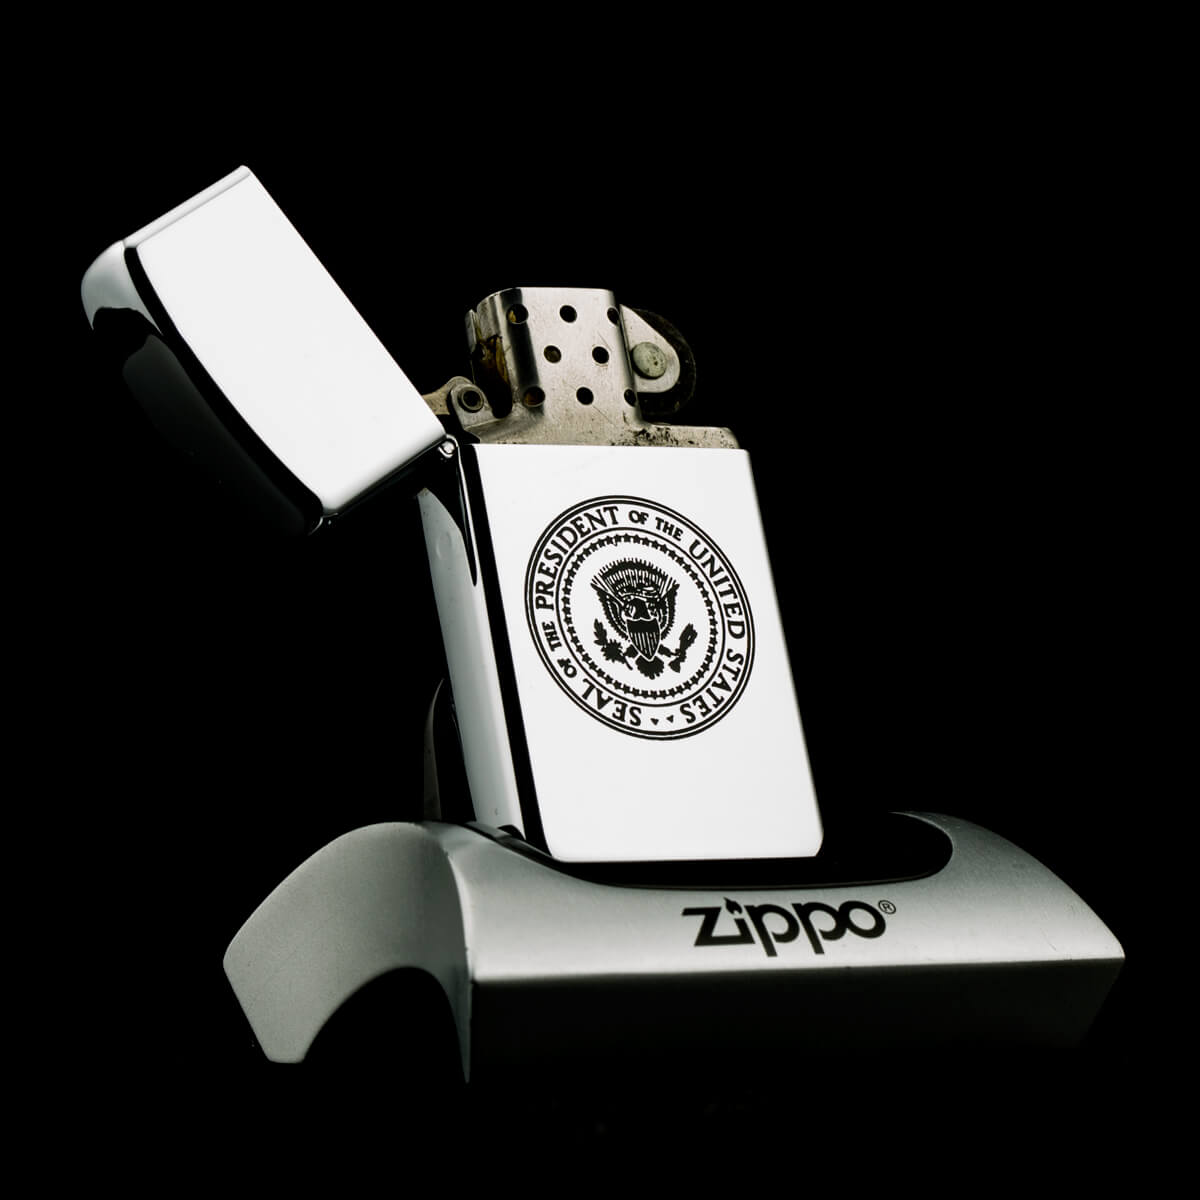 hot-quet-zippo-army-one-seal-of-president-of-the-united-states-iv-1998-huy-hieu-tong-thong-my